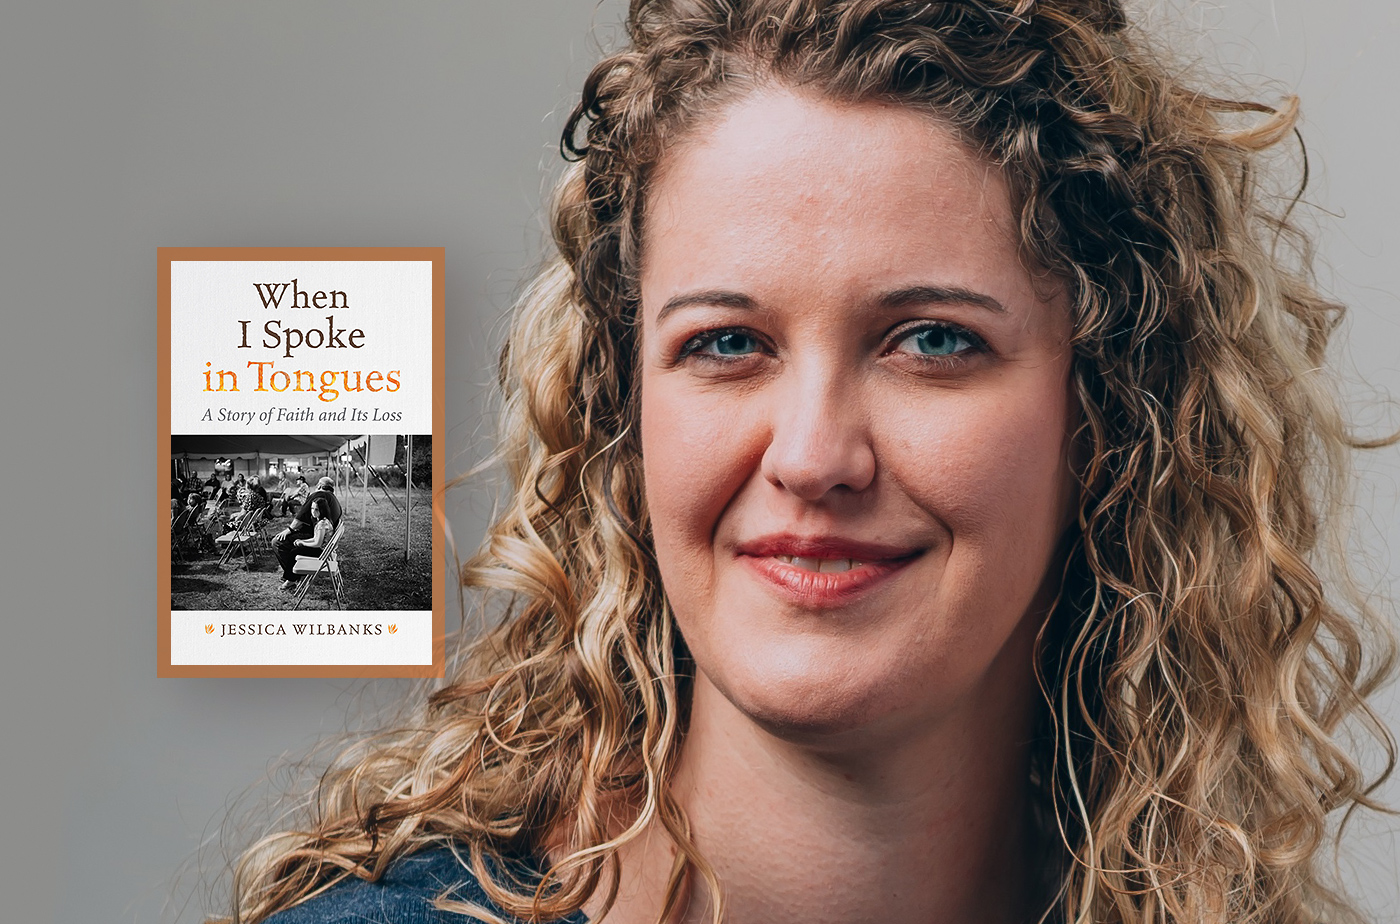 Catapult online classes: Jessica Wilbanks, 6-Week Online Nonfiction Workshop: Memoir 101, Nonfiction, Memoir, Workshop